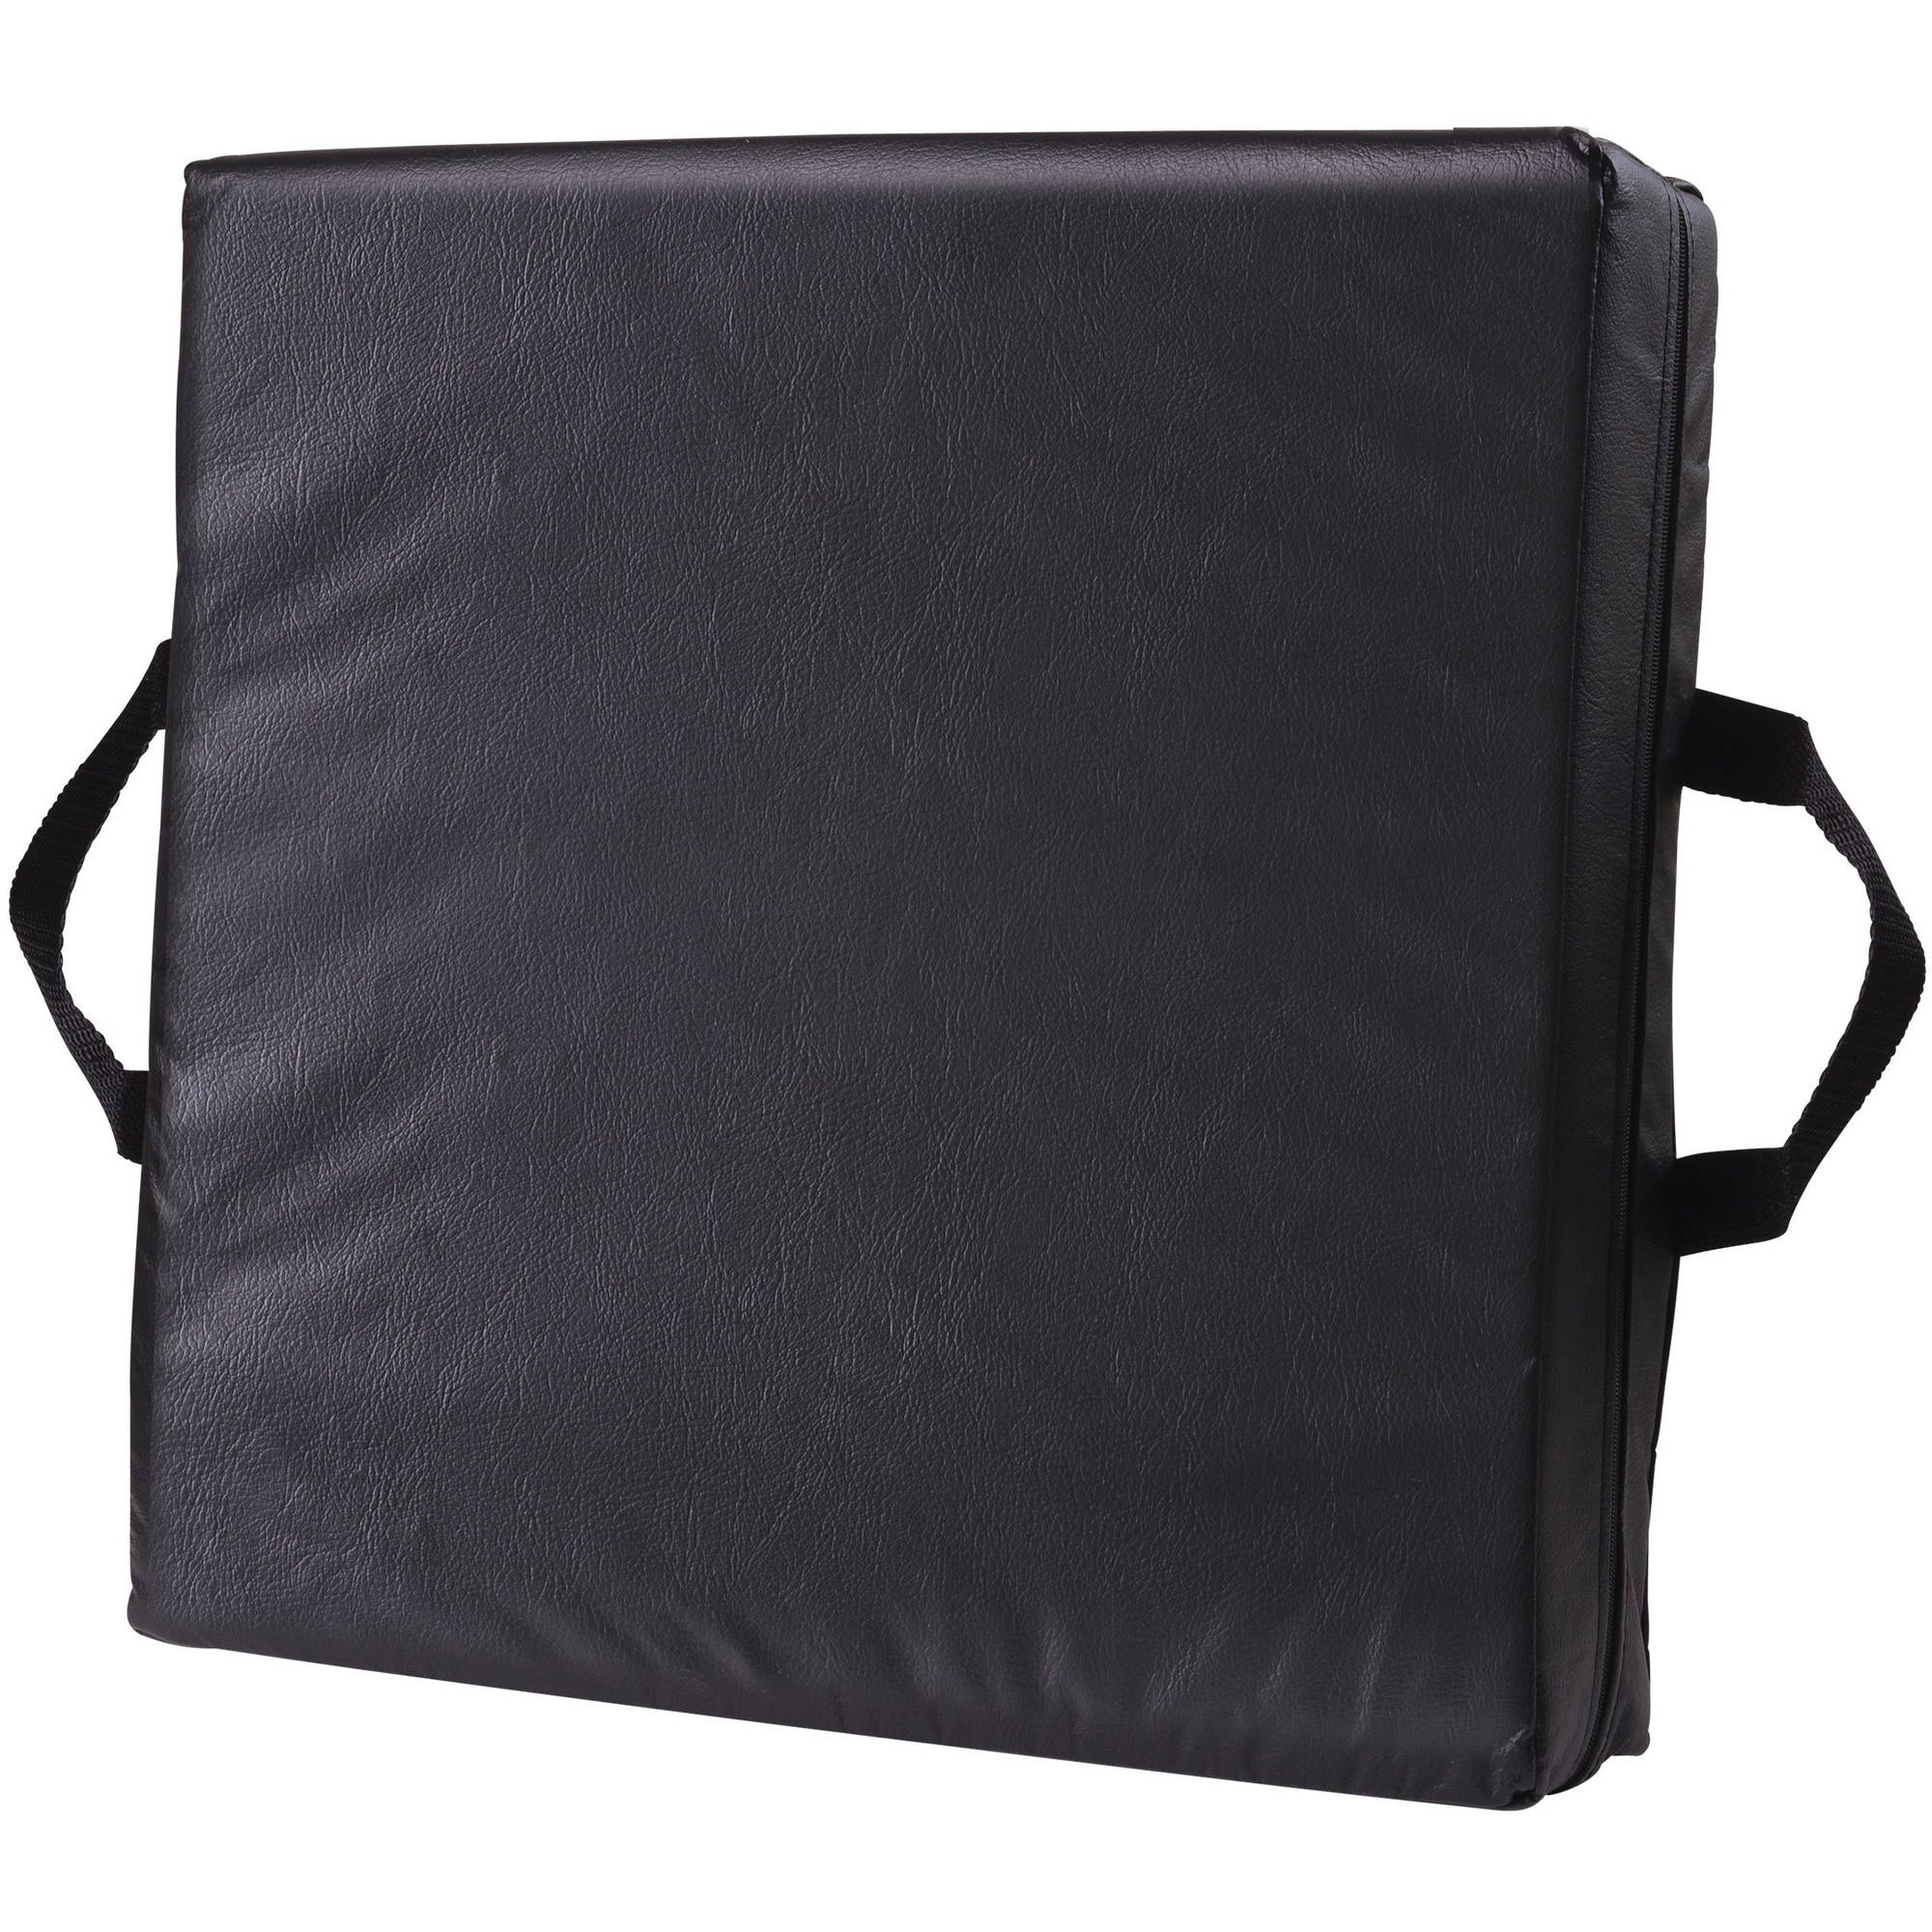 DMI Wheelchair Cushion with Black Cover, Cushion for Car Seat Driver, Adult Booster Seat, Thick Seat Riser, Seat Lift for Wheelchair